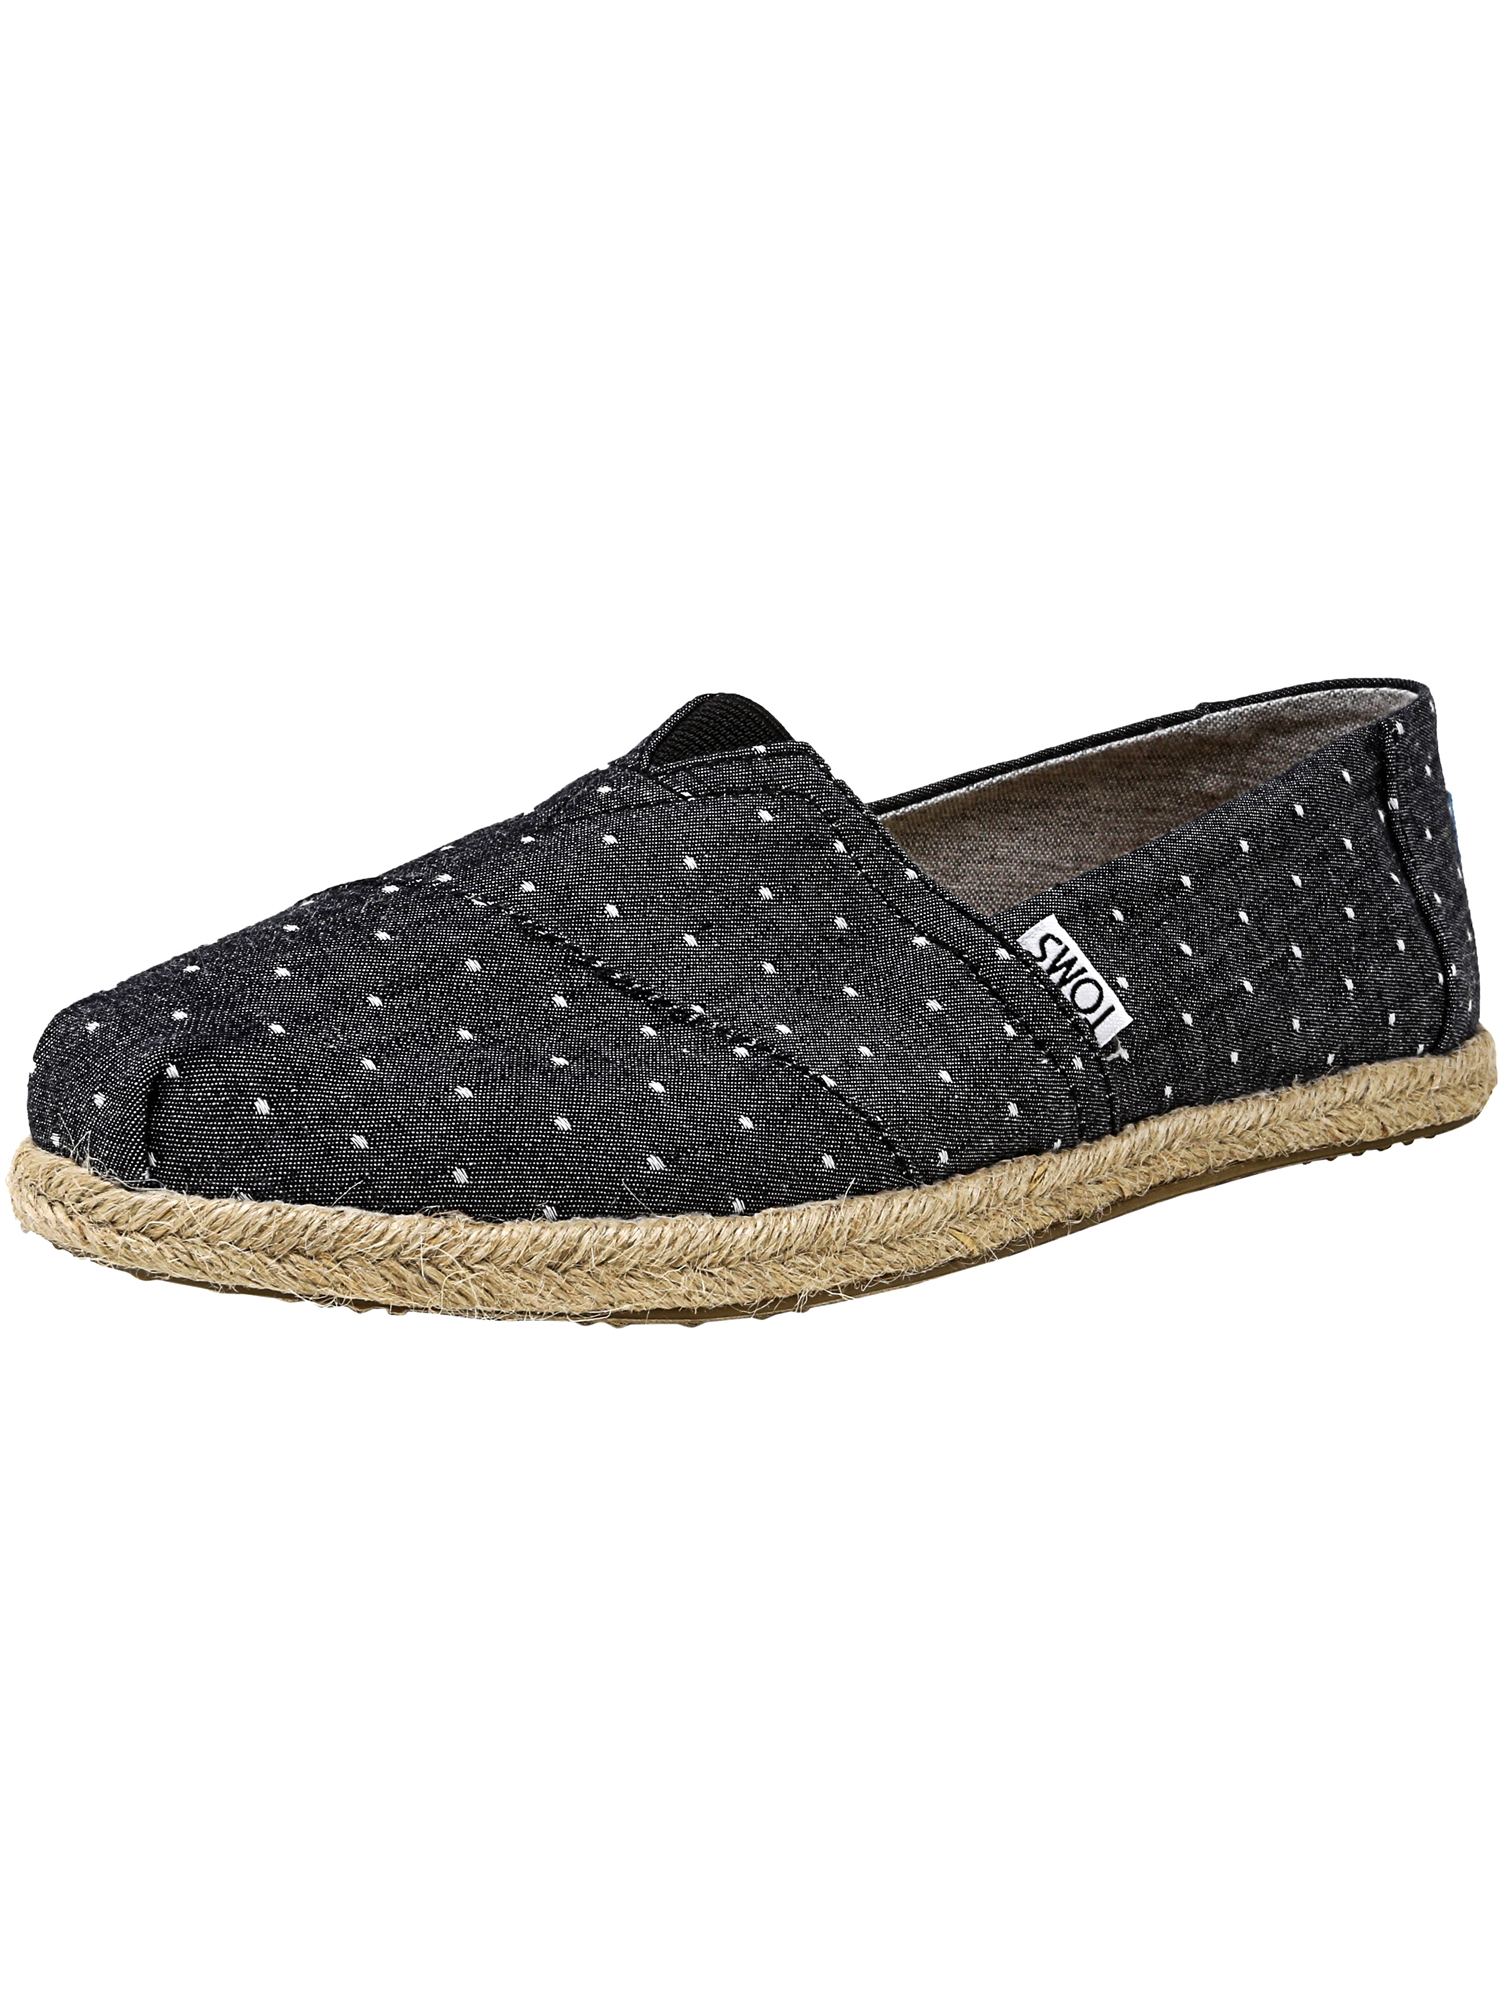 TOMS Women's Classic Chambray Rope Sole Black Dot Ankle-High Canvas Slip-On Shoes - 6.5M 6dtuIr